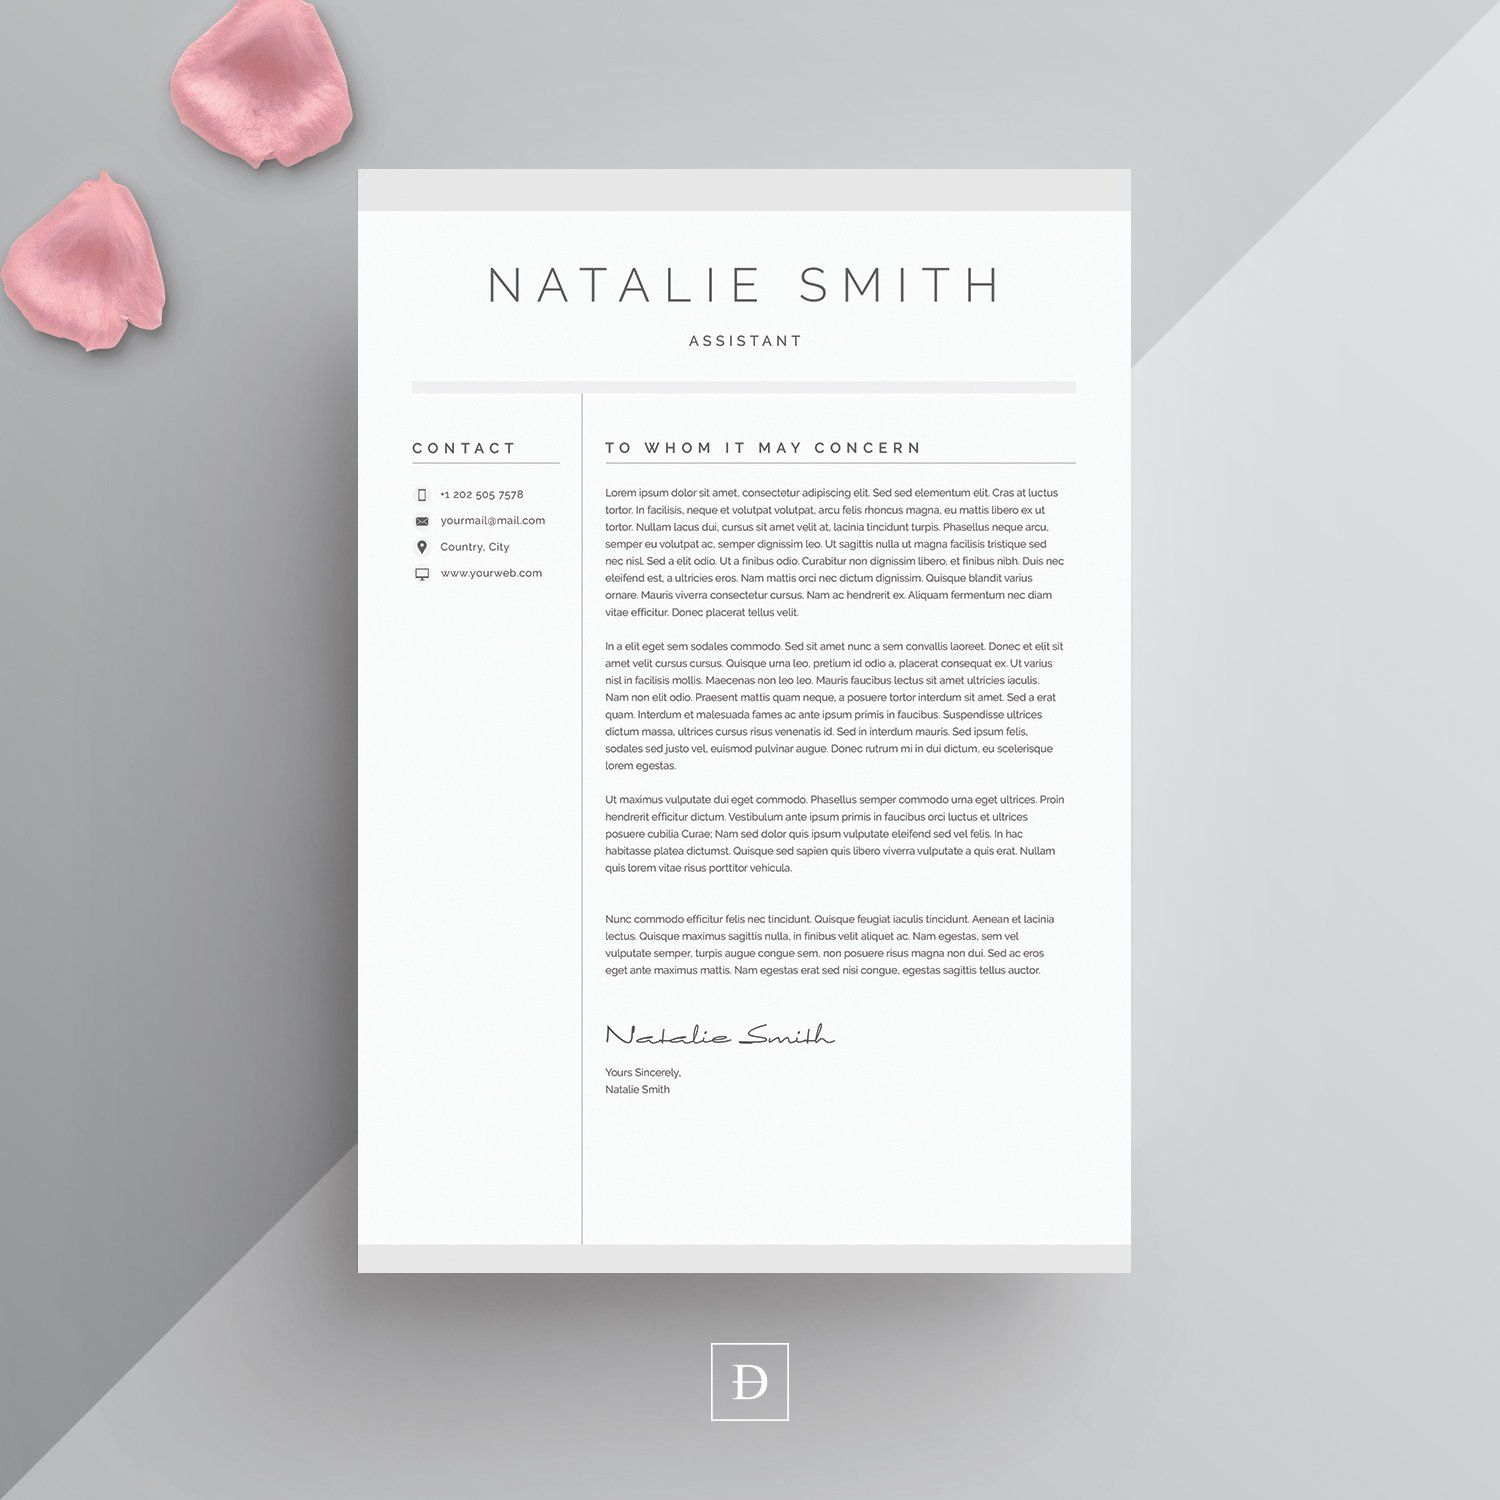 Word Resume Cover Letter Template With Images Resume Cover